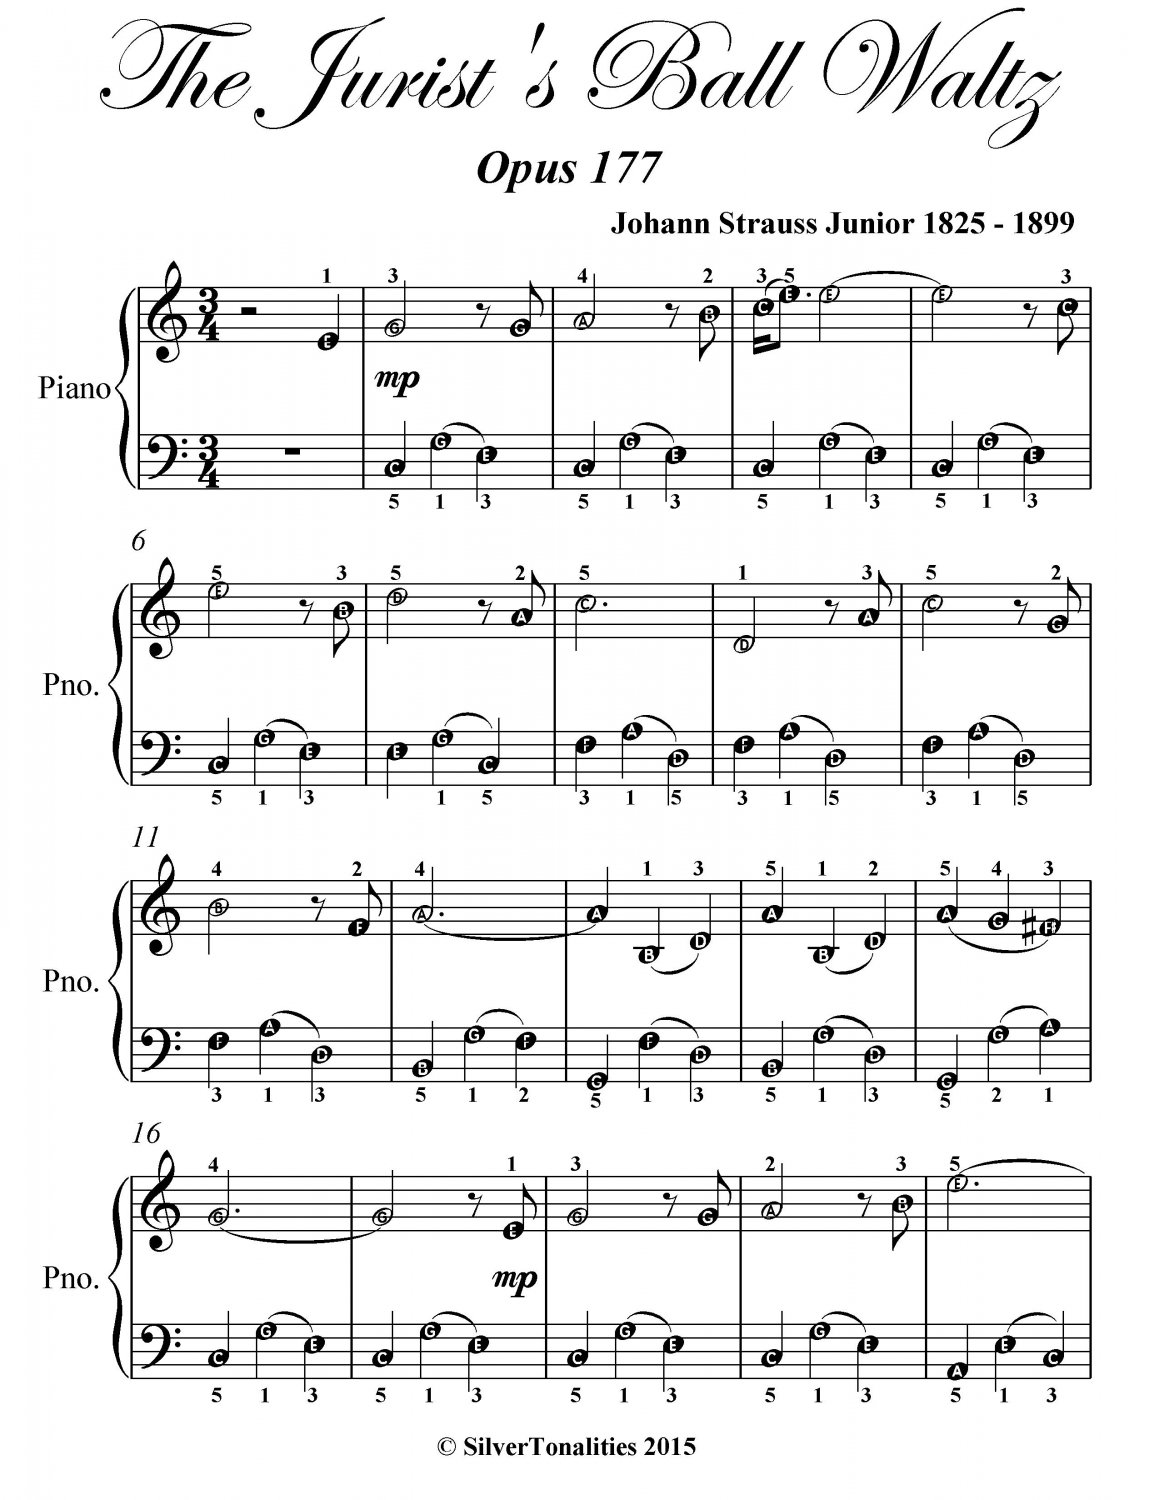 Jurist�s Ball Waltz Opus 177 Easy Piano Sheet Music PDF